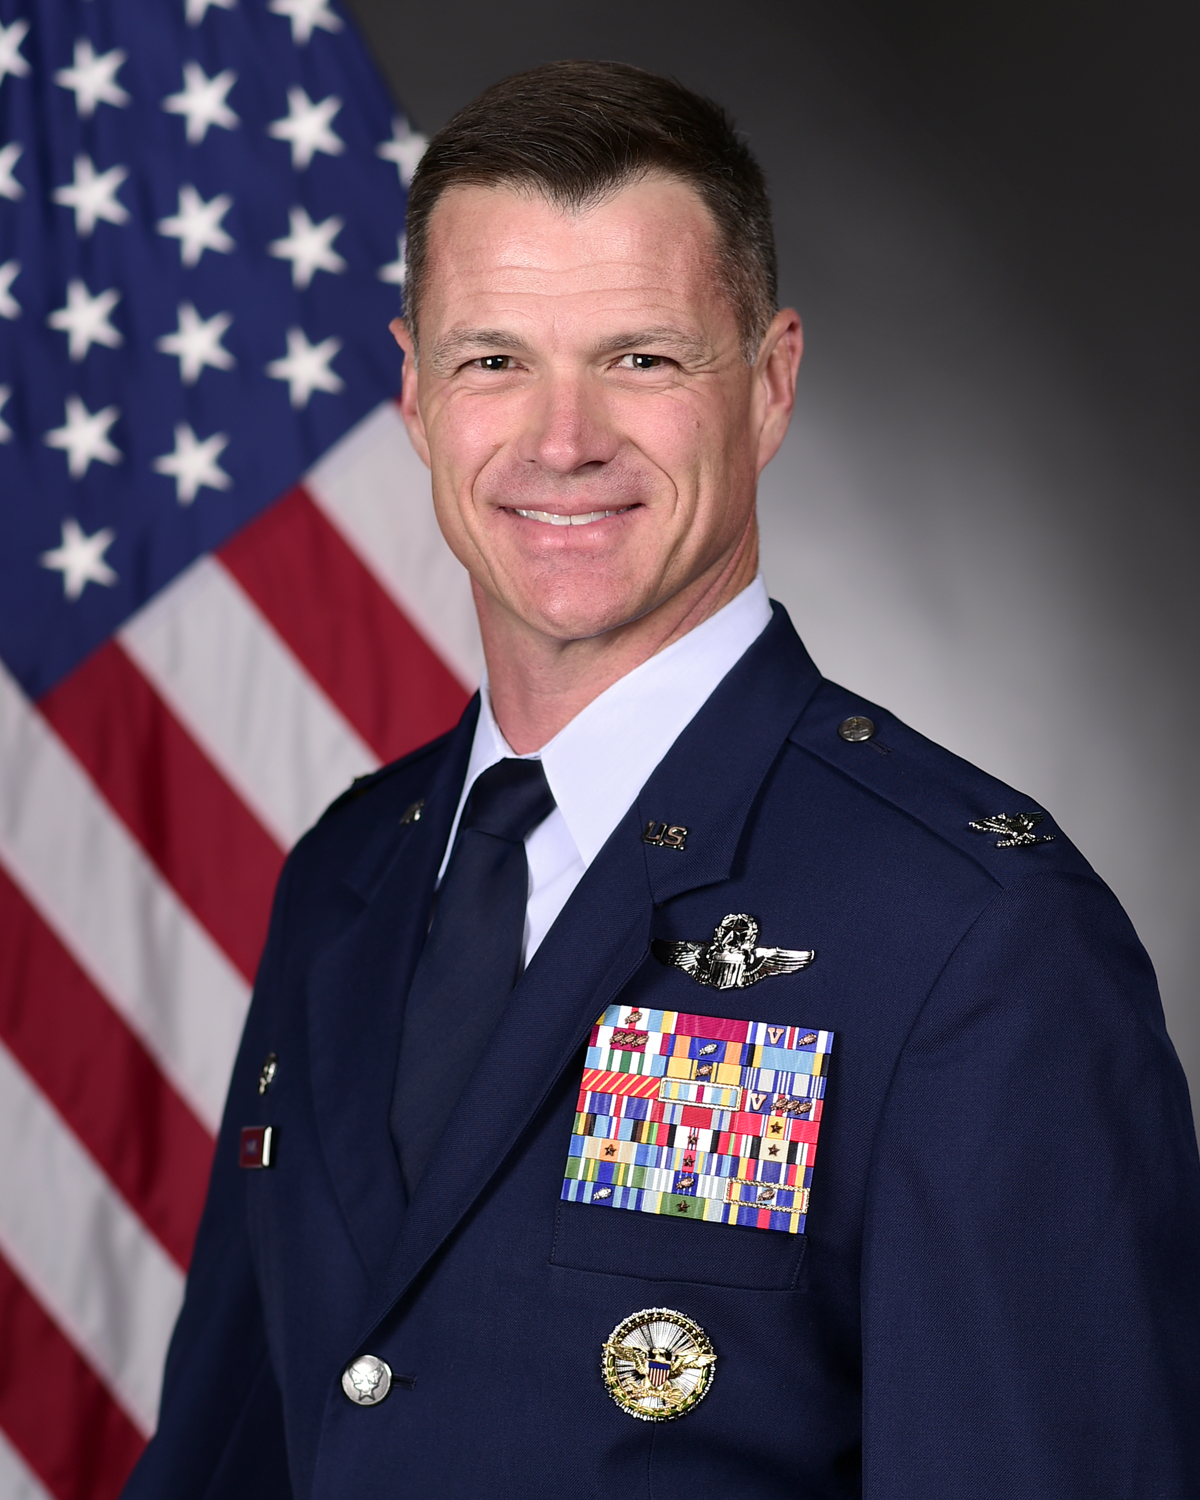 A professional image of Colonel Michael R. Drowley.